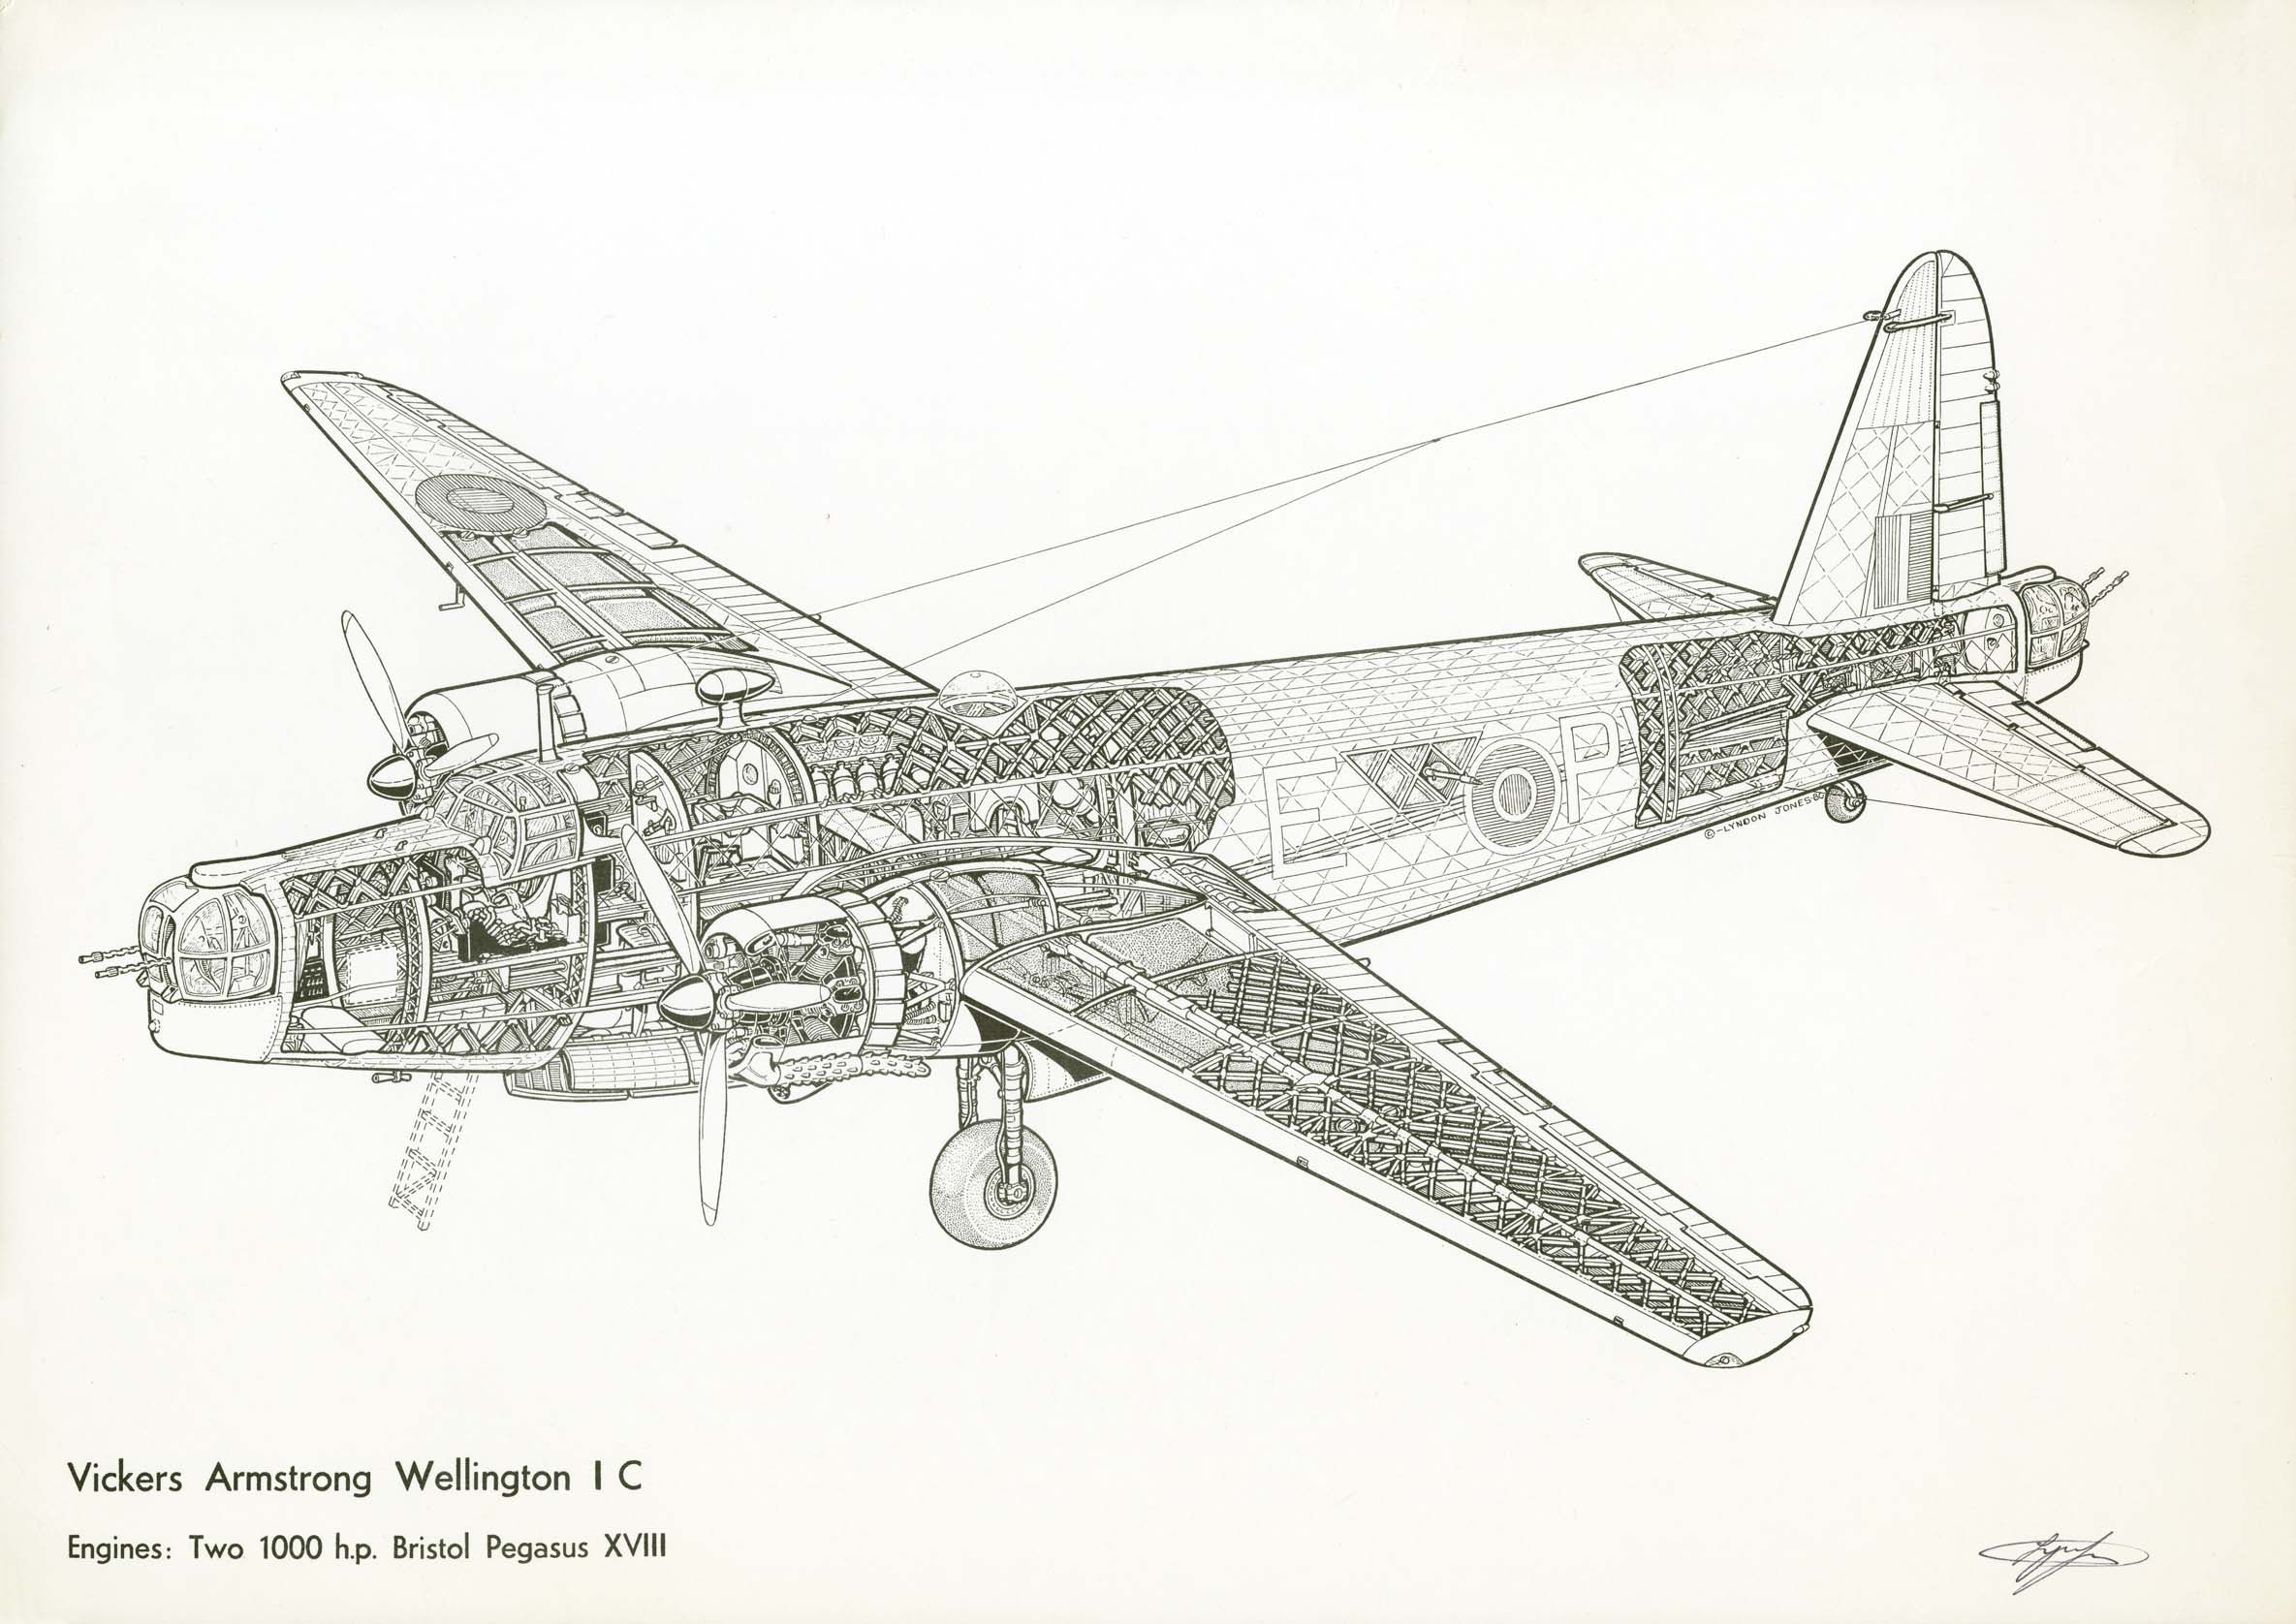 Vickers Armstrong Wellington